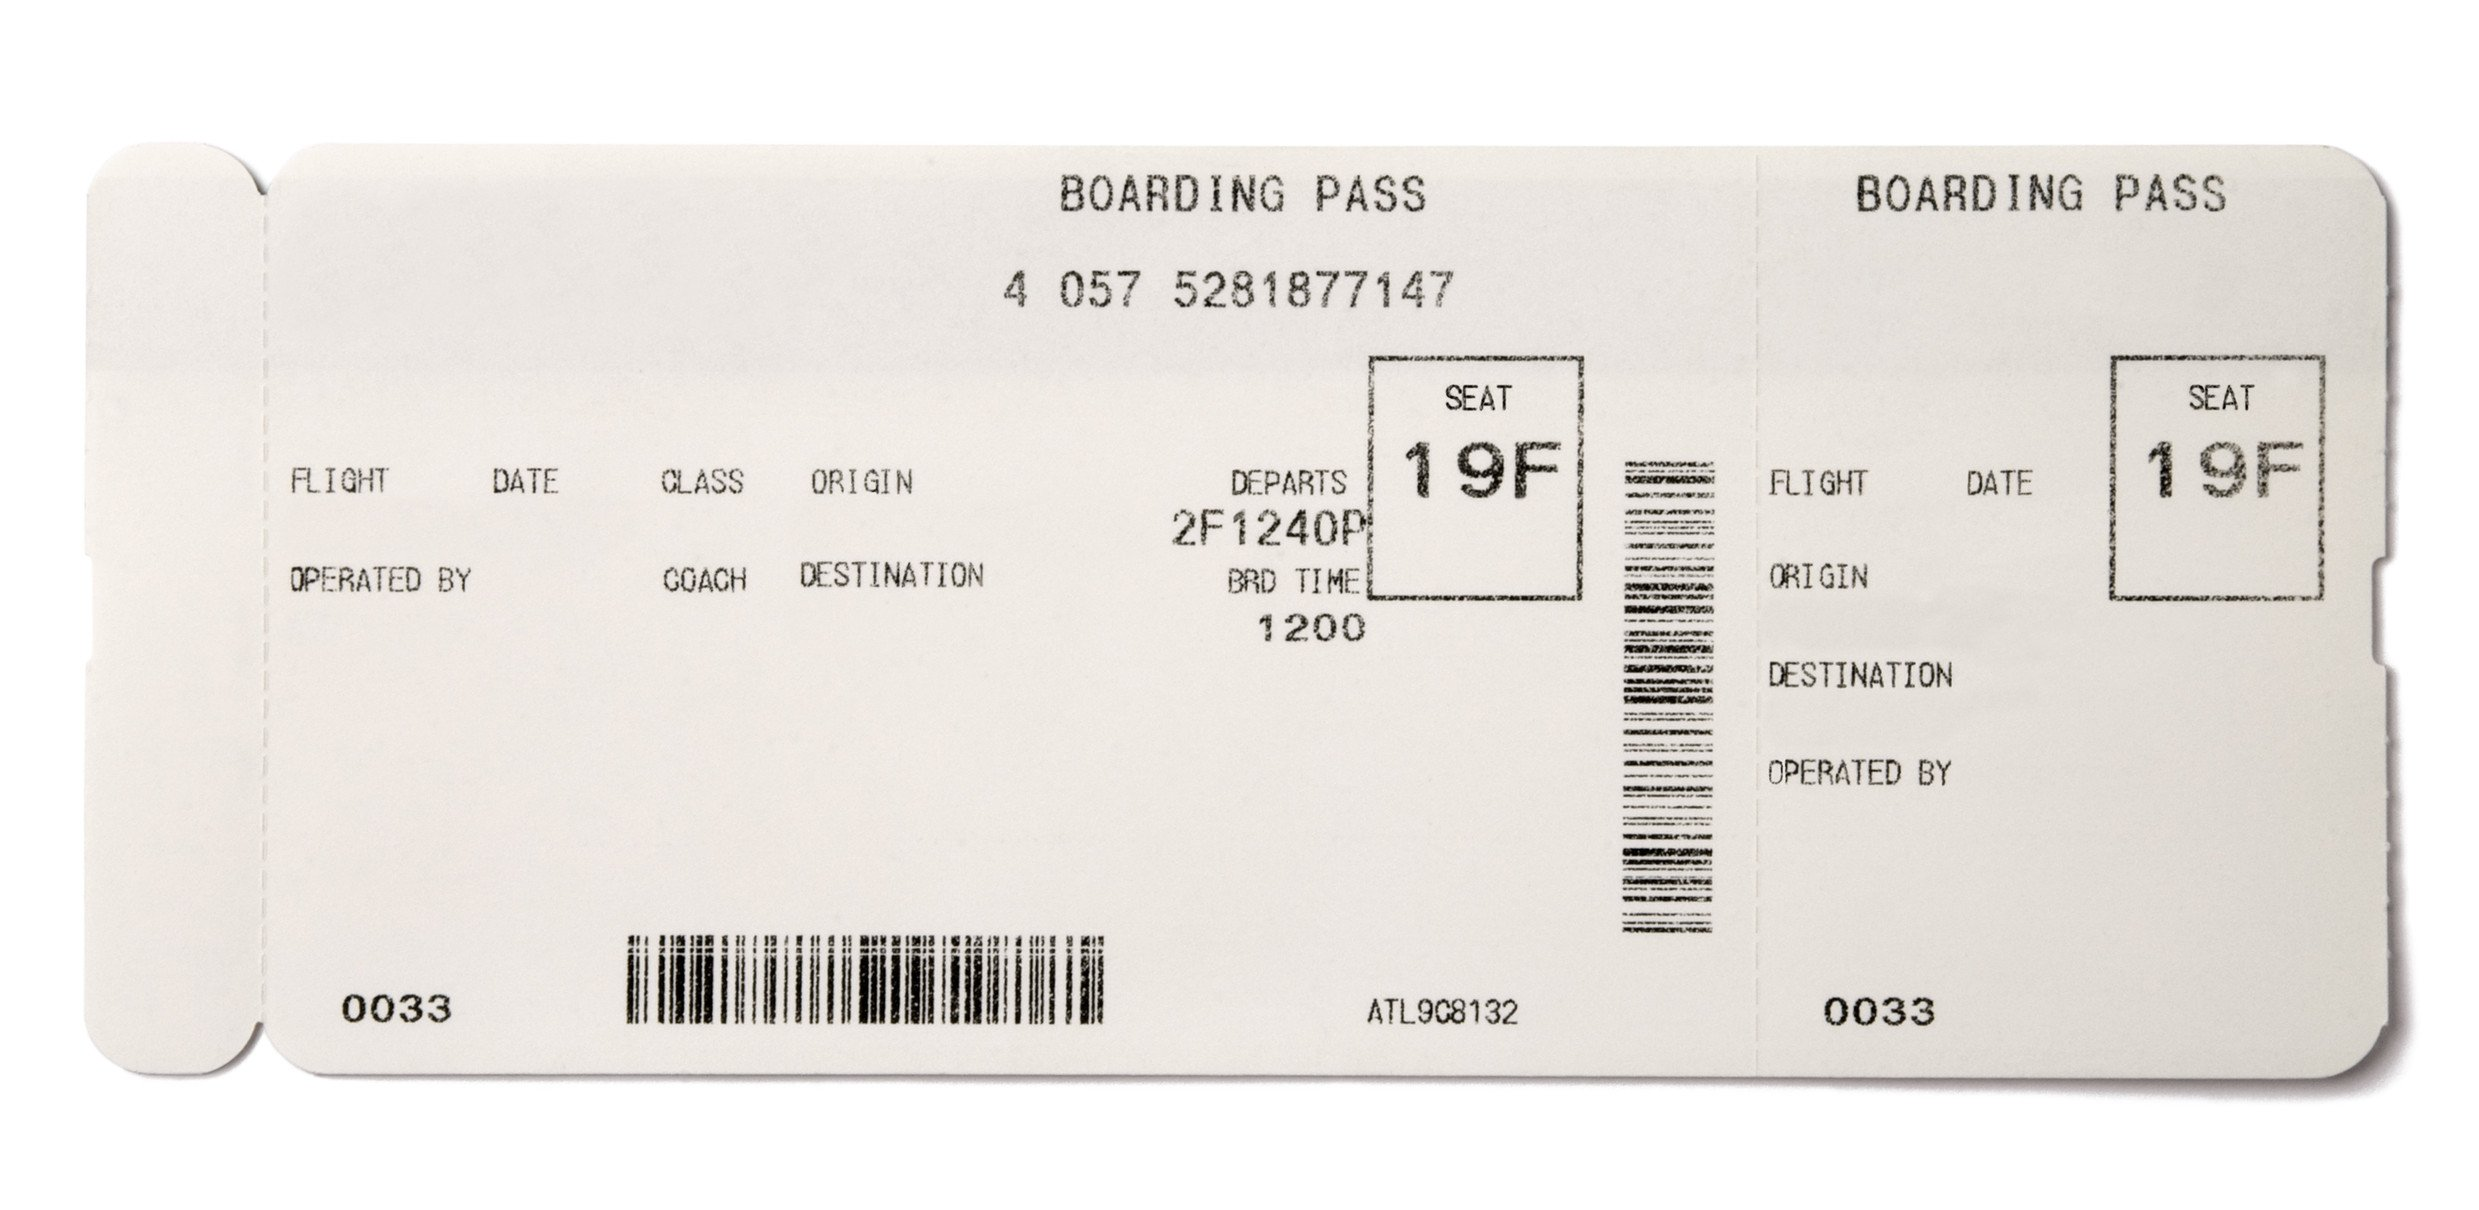 Fake Boarding Pass Template Making Fake Boarding Passes as Gifts Le Chic Geek